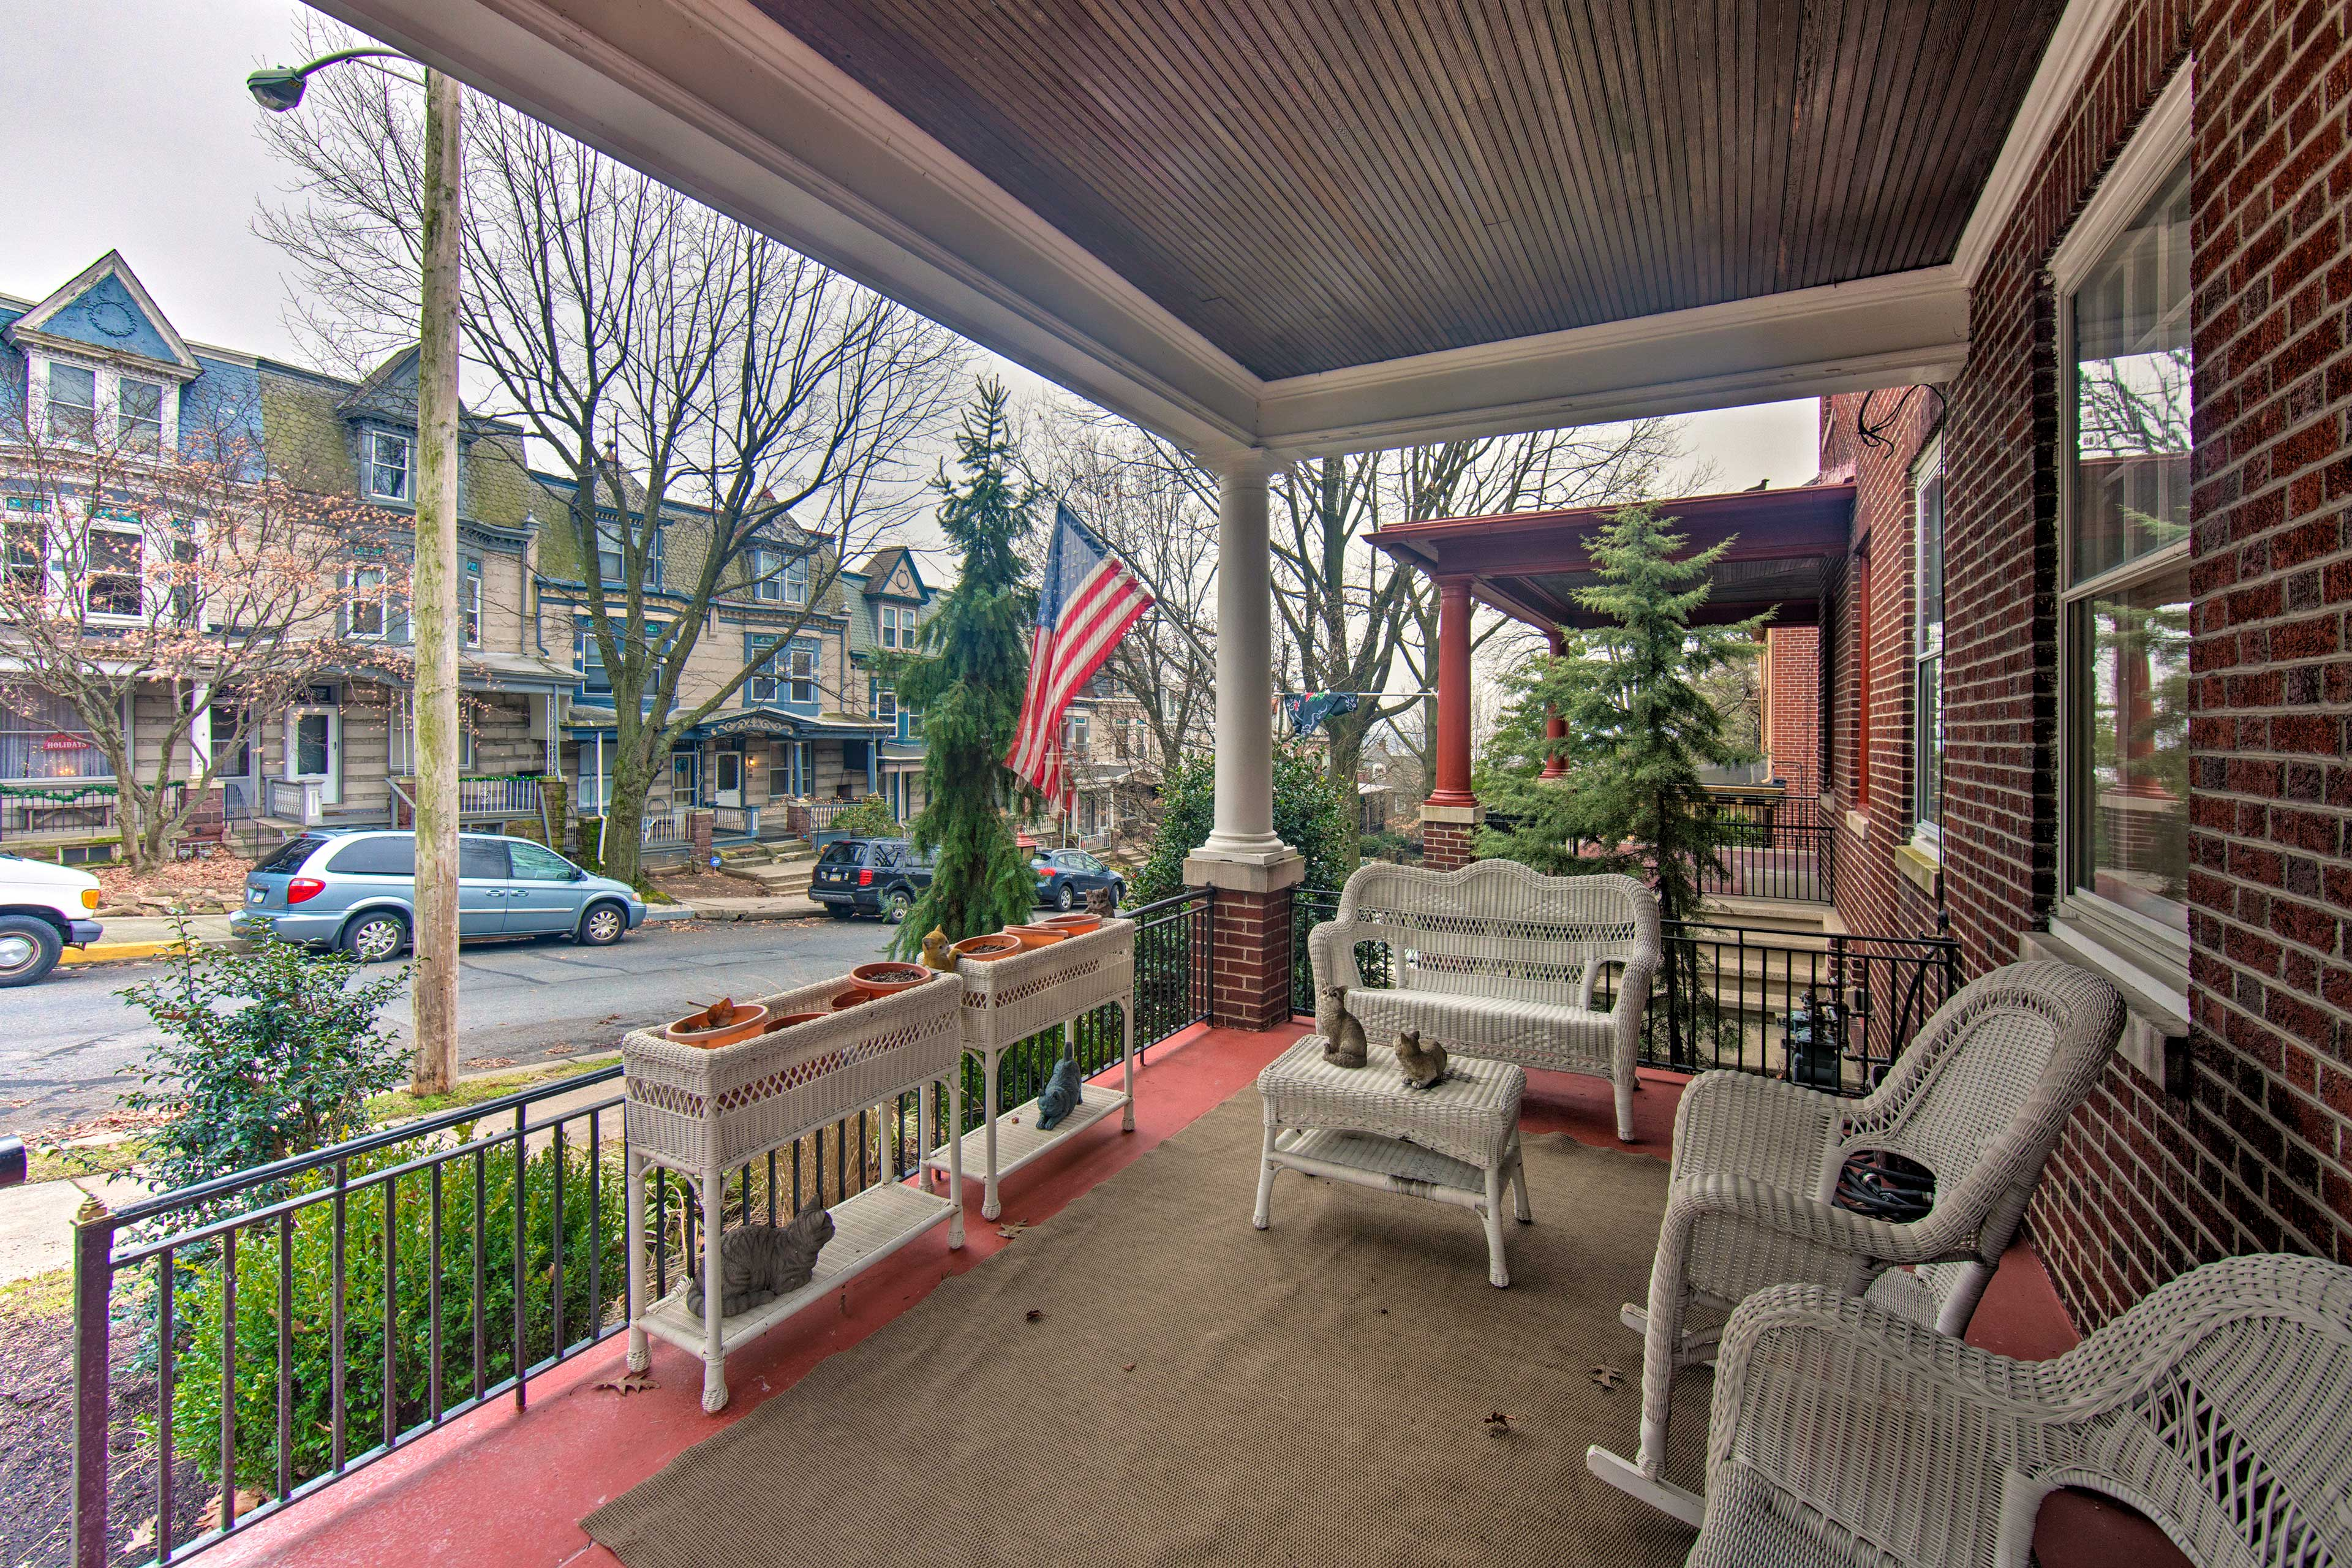 Relax on the front porch of this vacation rental home.